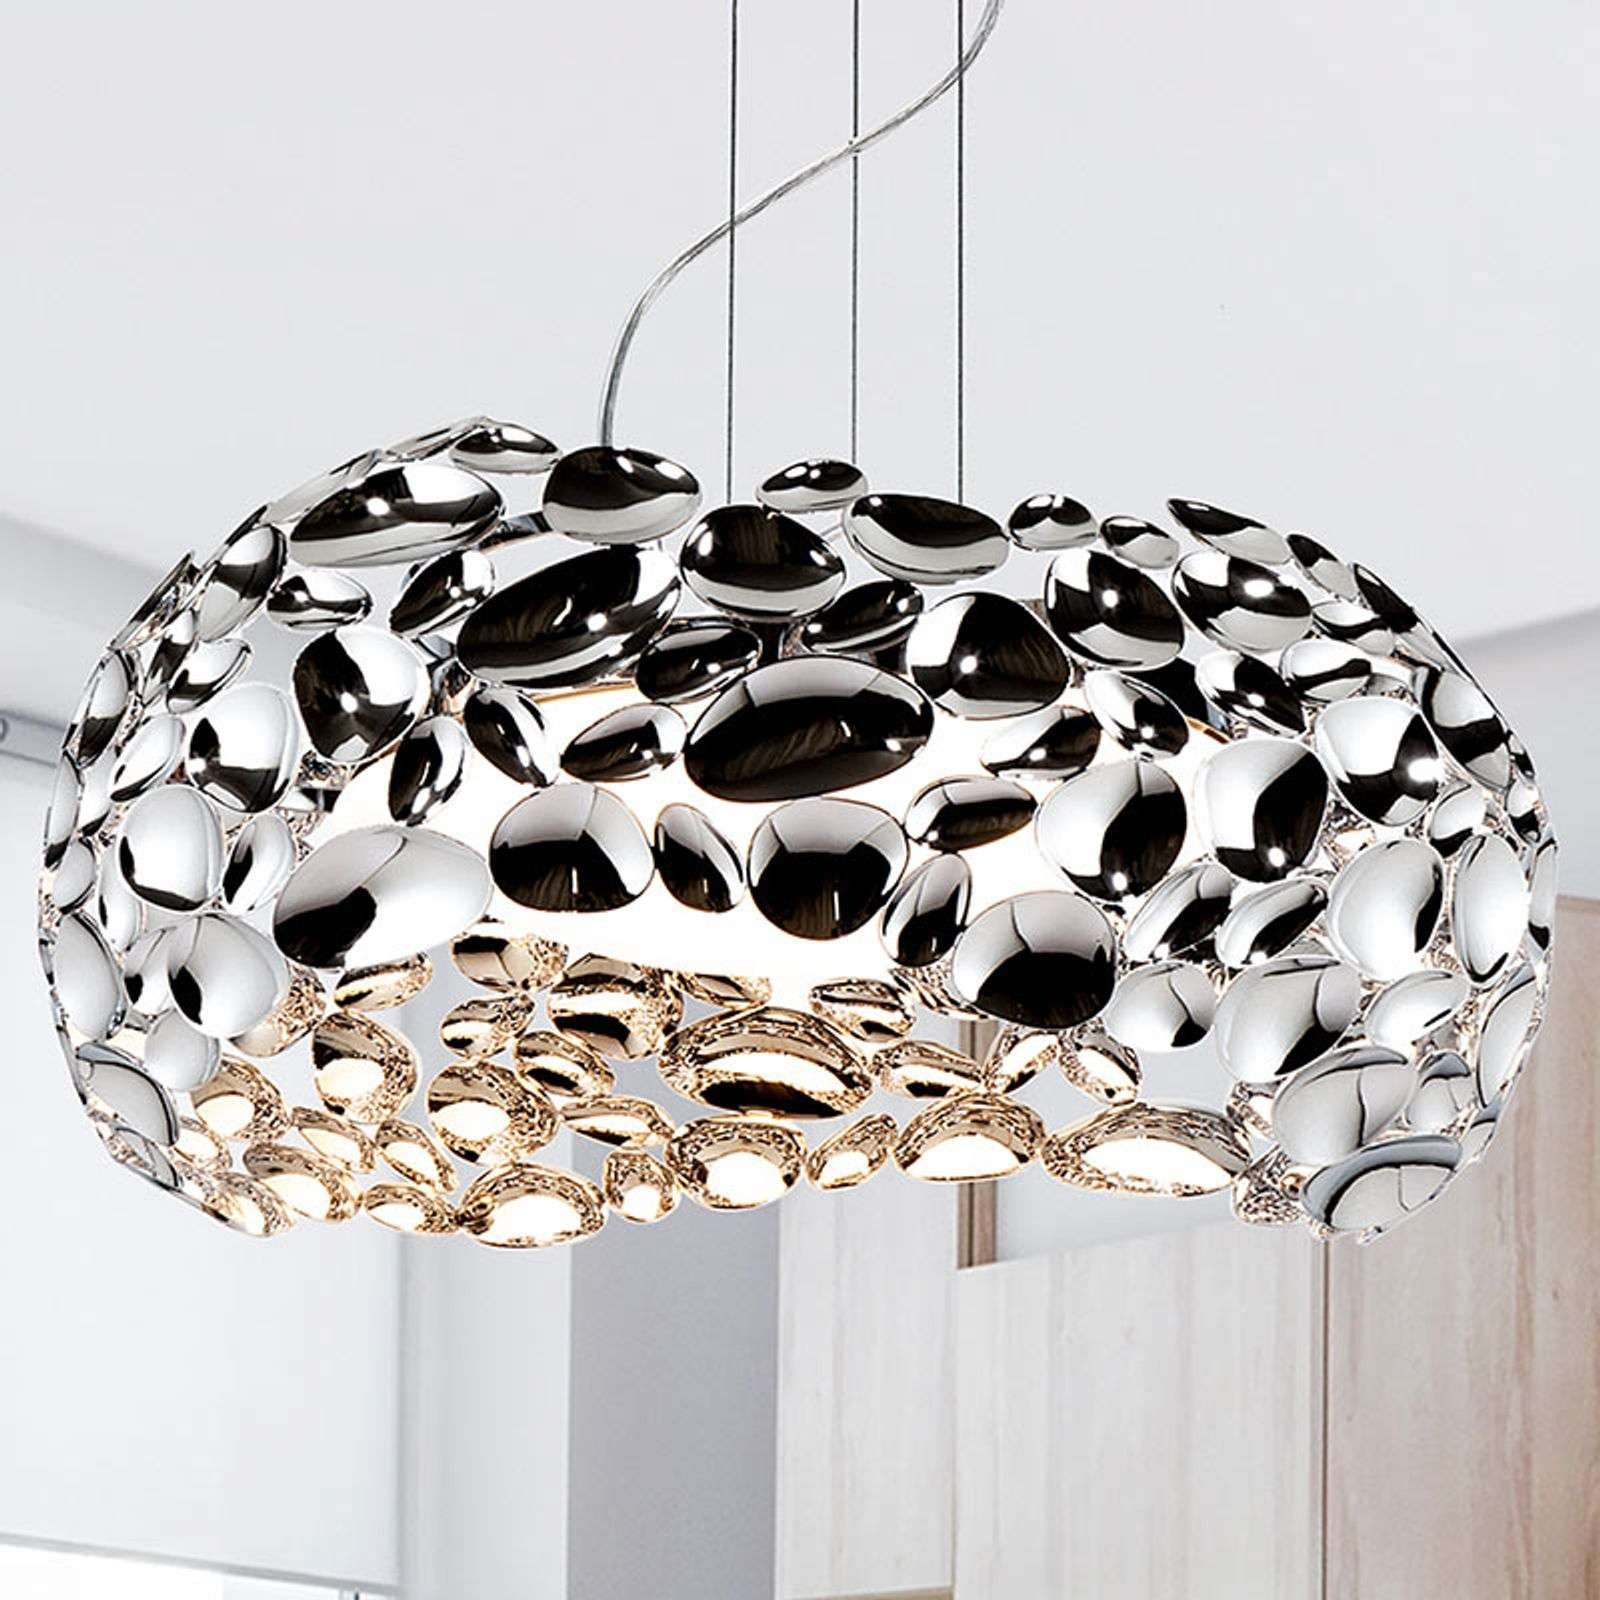 Suspension LED Narisa 47 cm brillant chromé